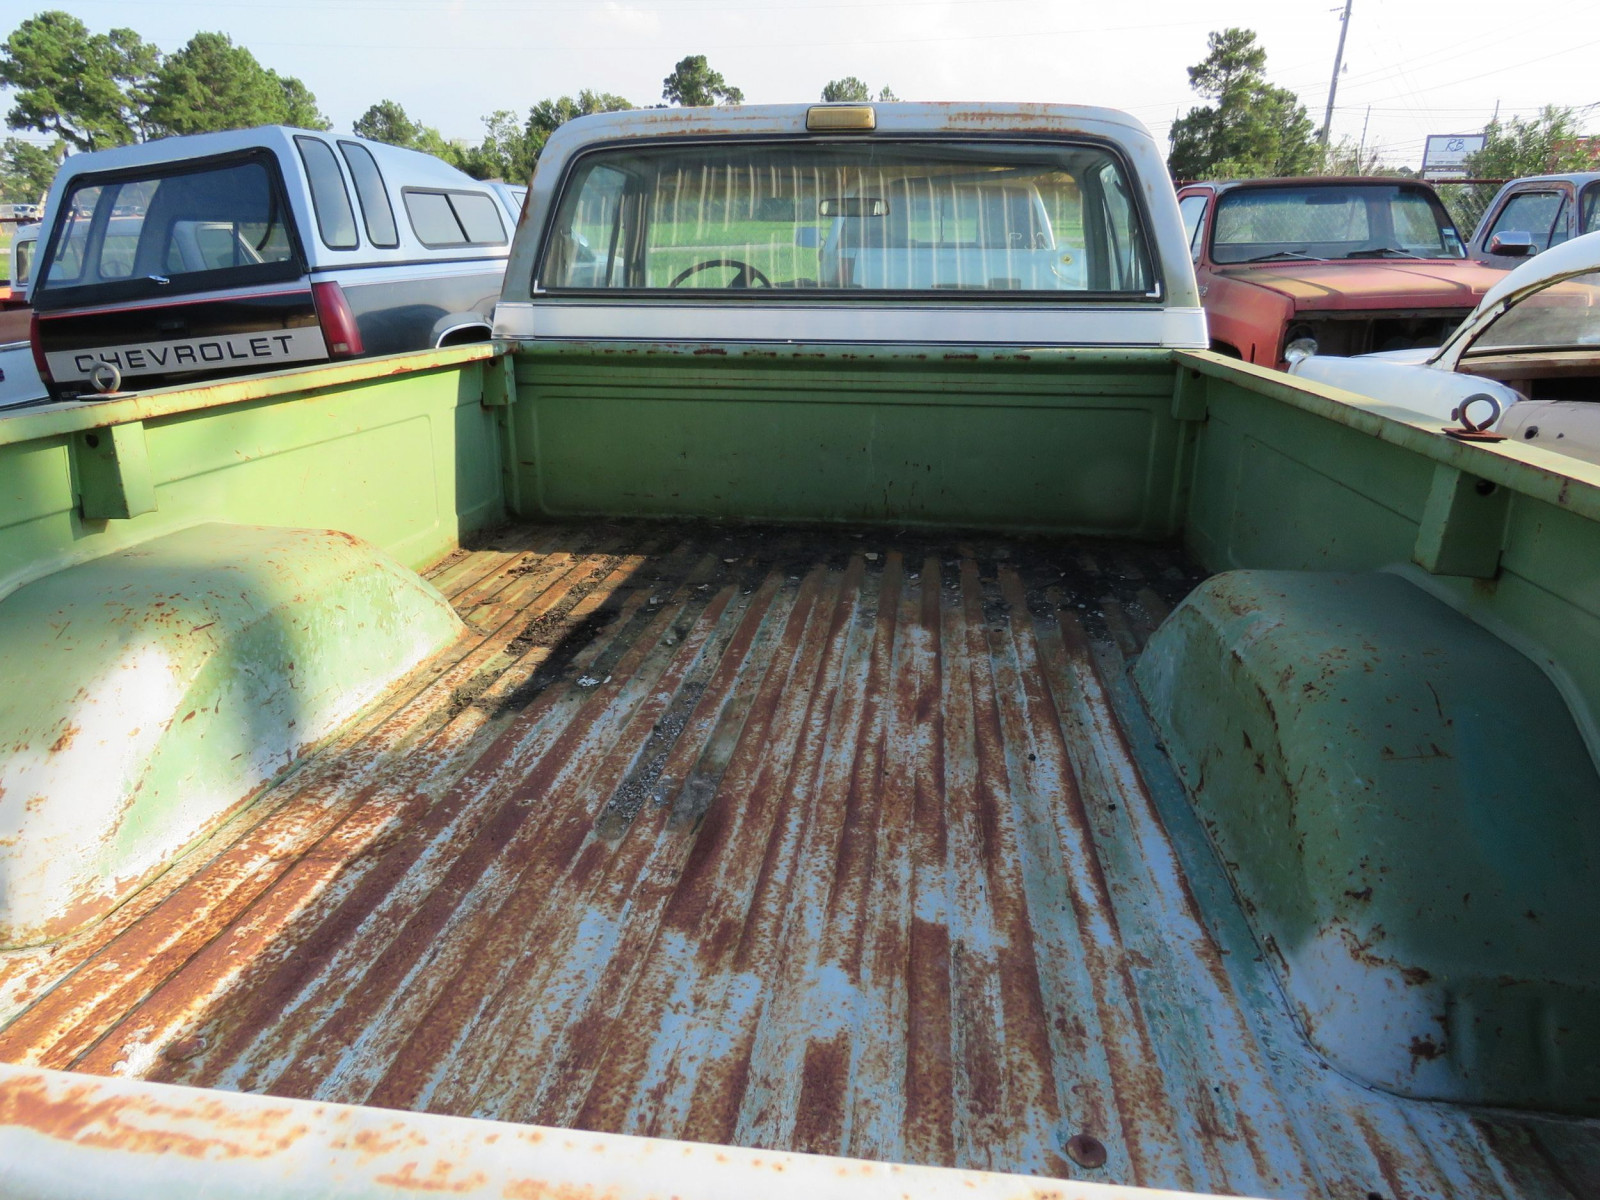 1976 GMC High Sierra 1/2 ton Pickup - Image 3